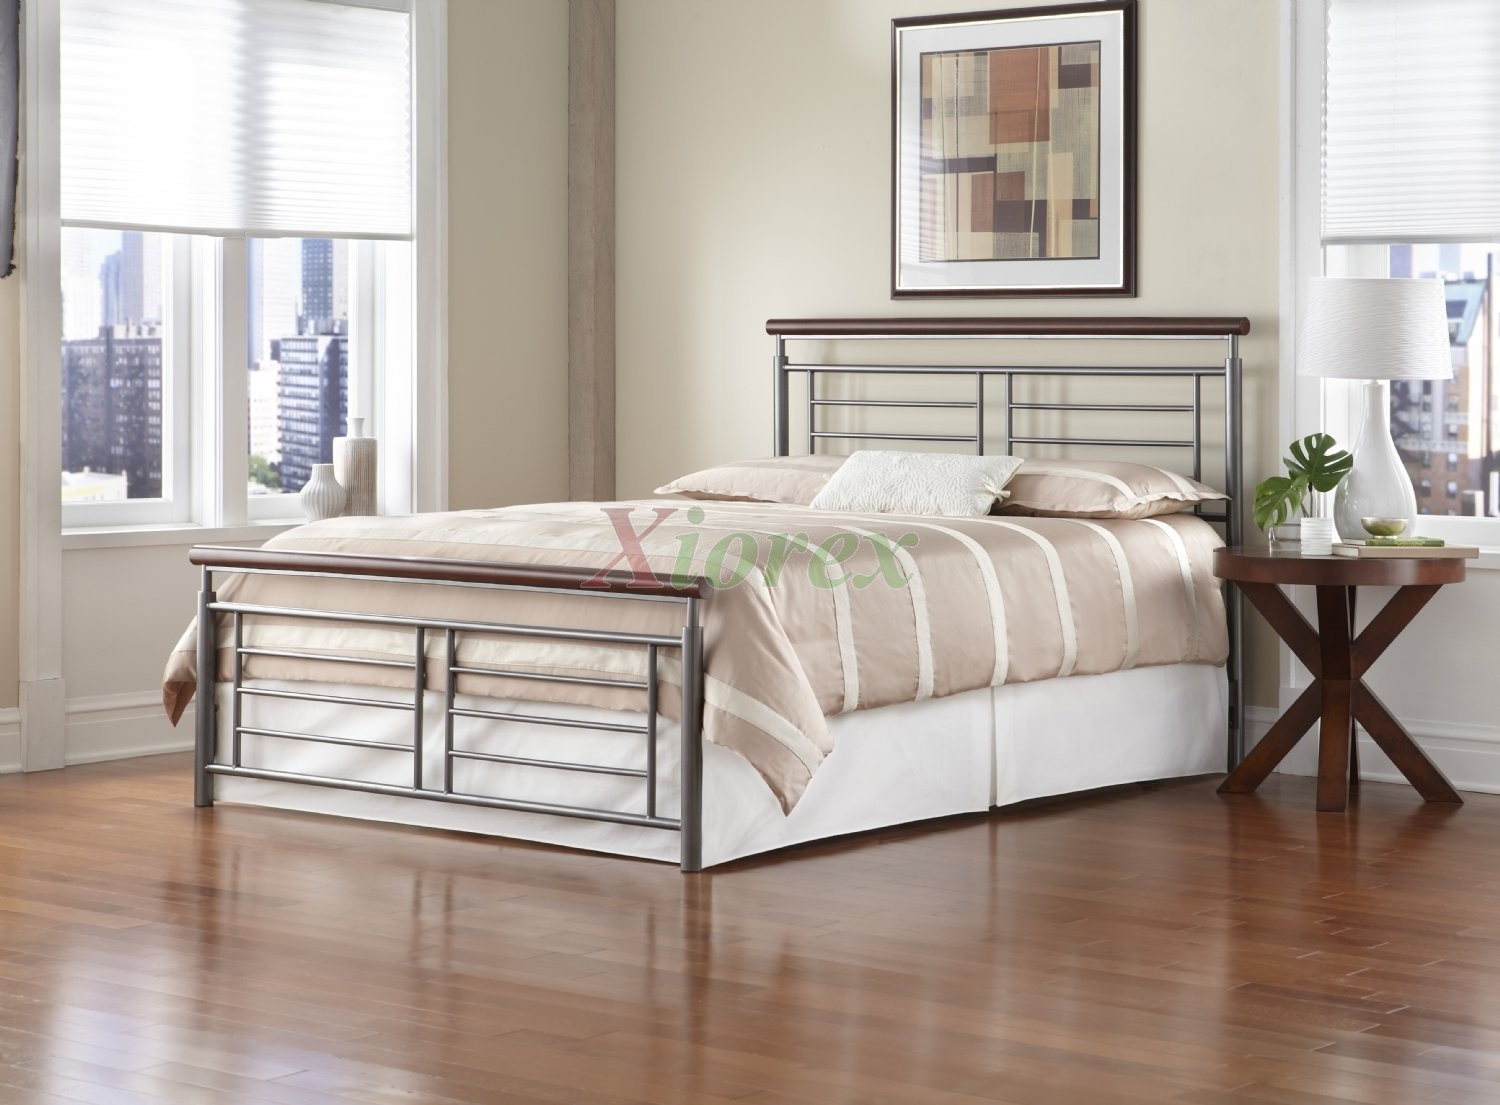 Fashion Bedroom Furniture Simple Fontane Bed W Cherry Metalsilver Finishfashion Bed Group Xiorex Inspiration Design